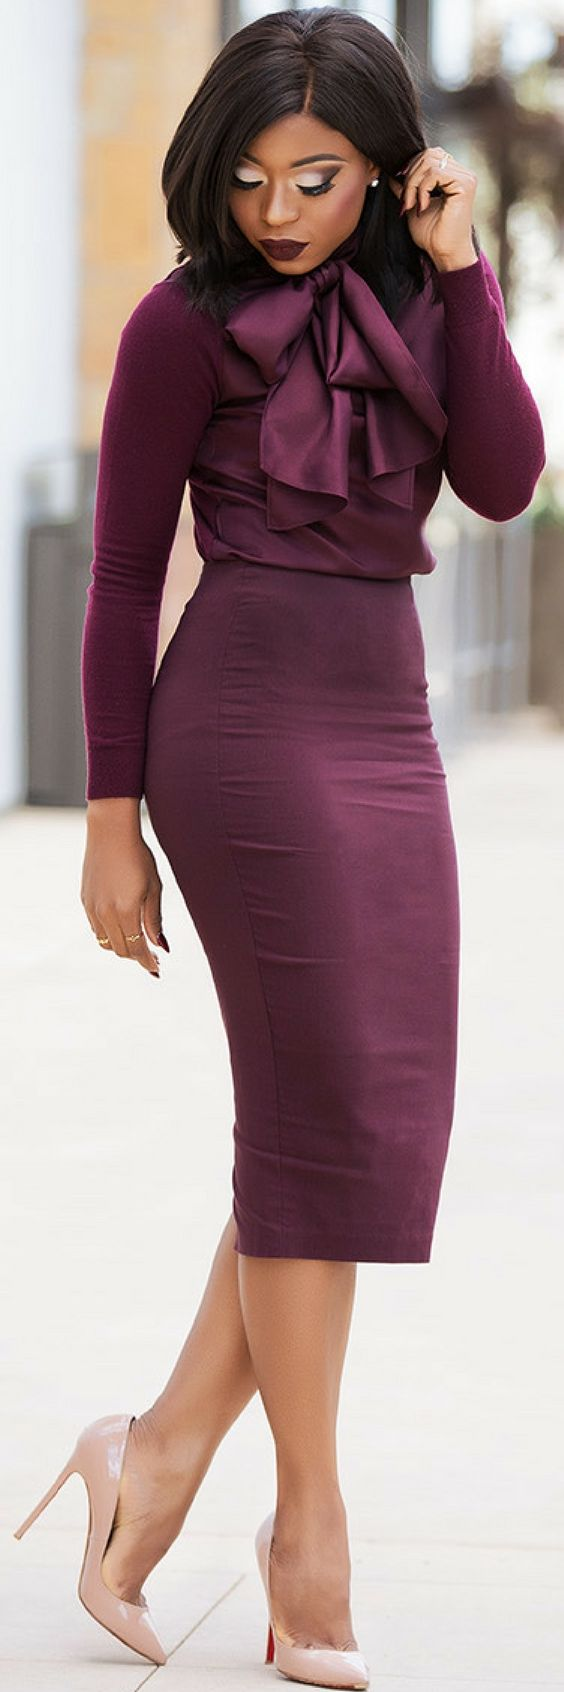 Jubilant Fall Look Is Just Right For Work - How To Style By Jadore Fashion http://ecstasymodels.blog/2017/10/10/jubilant-fall-look-style-jadore-fashion/